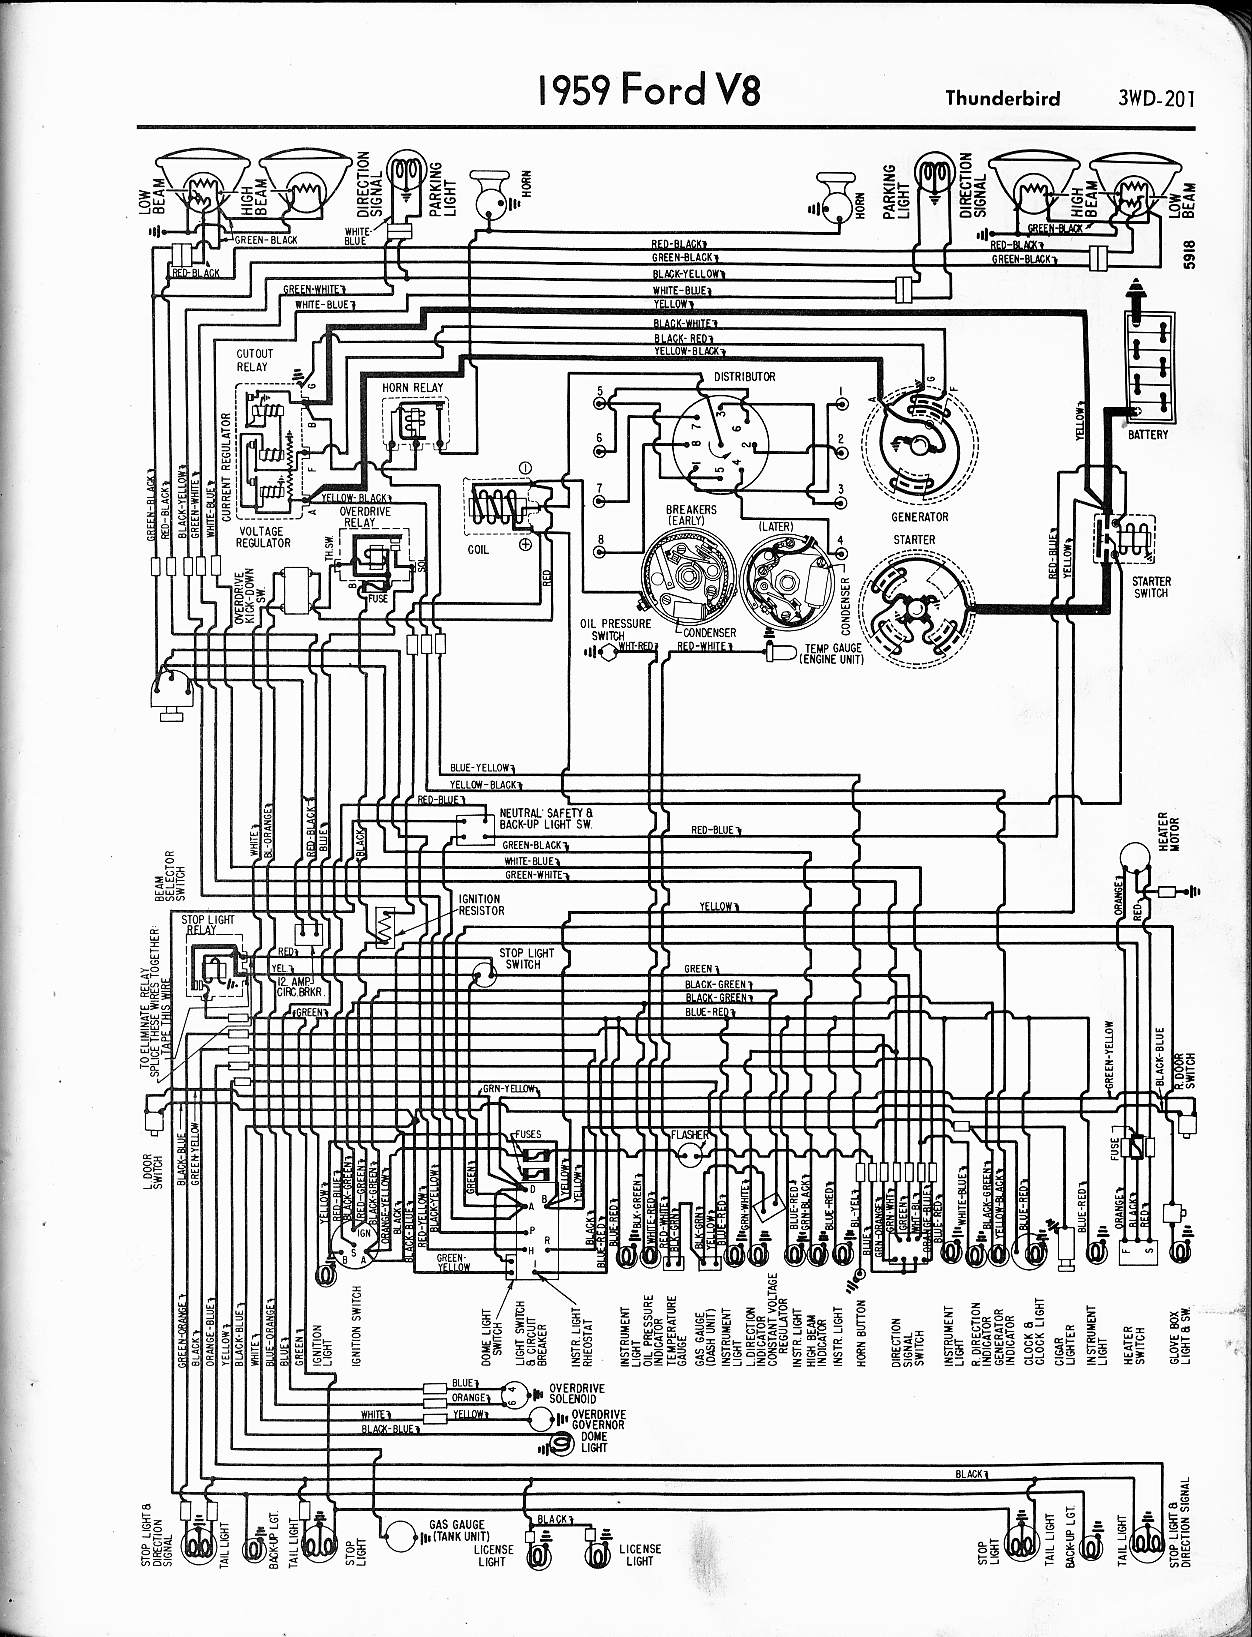 1964 ranchero fuse box wiring diagram today 1964 ranchero fuse box wiring diagram centre 1964 ranchero fuse box